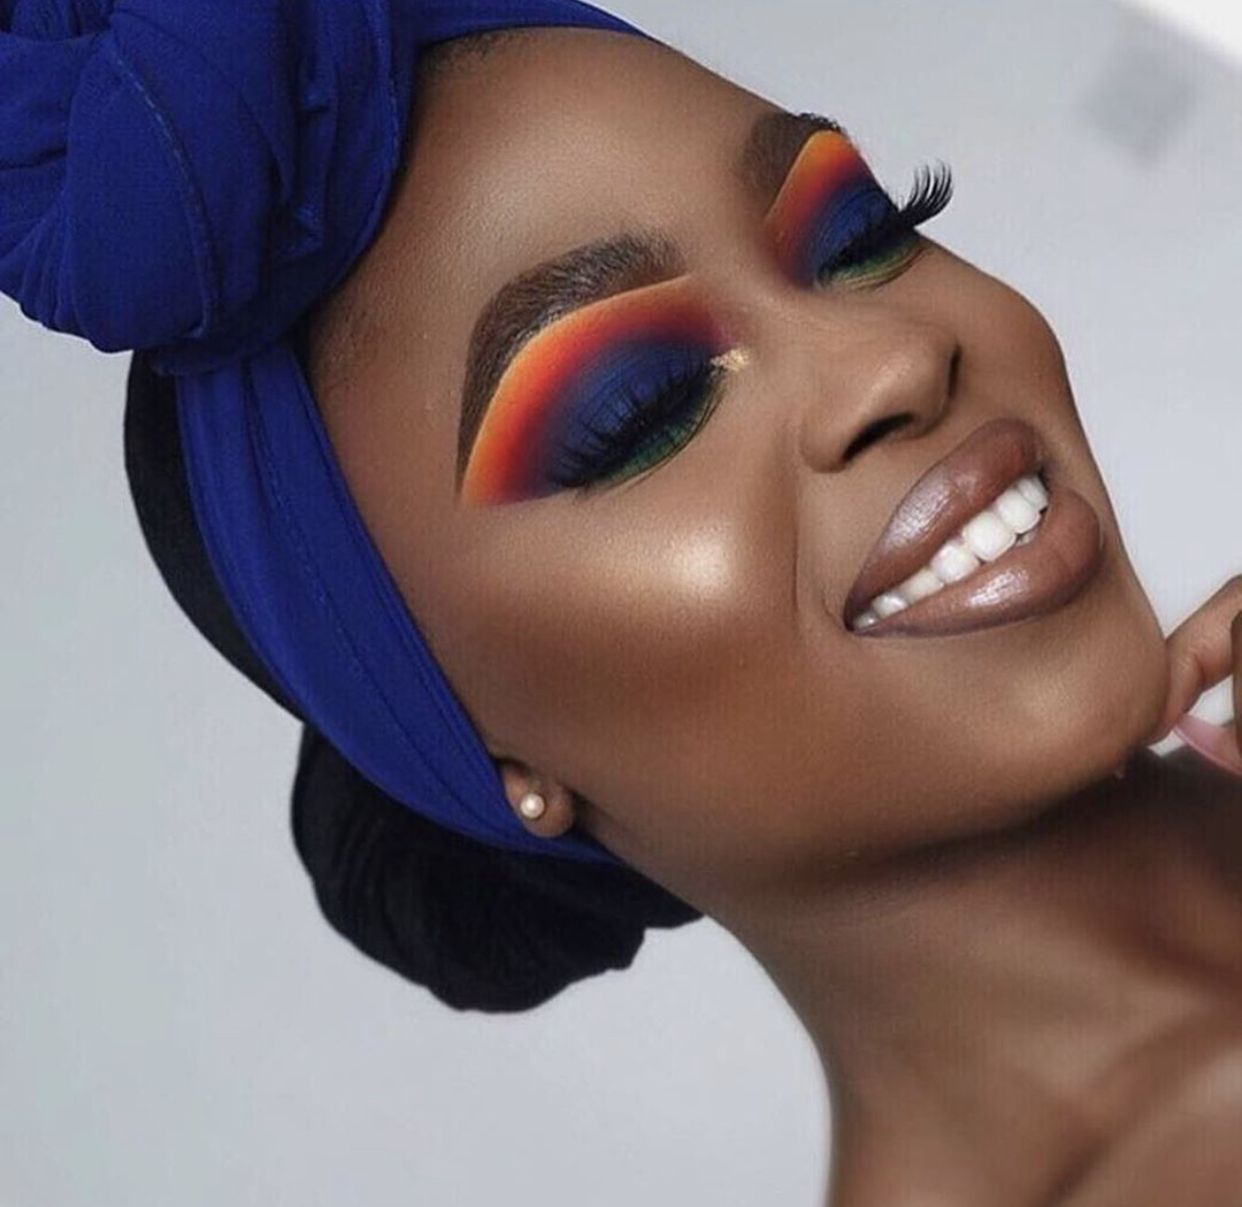 Blackwomen #darkskin #makeupideas #blue #makeup